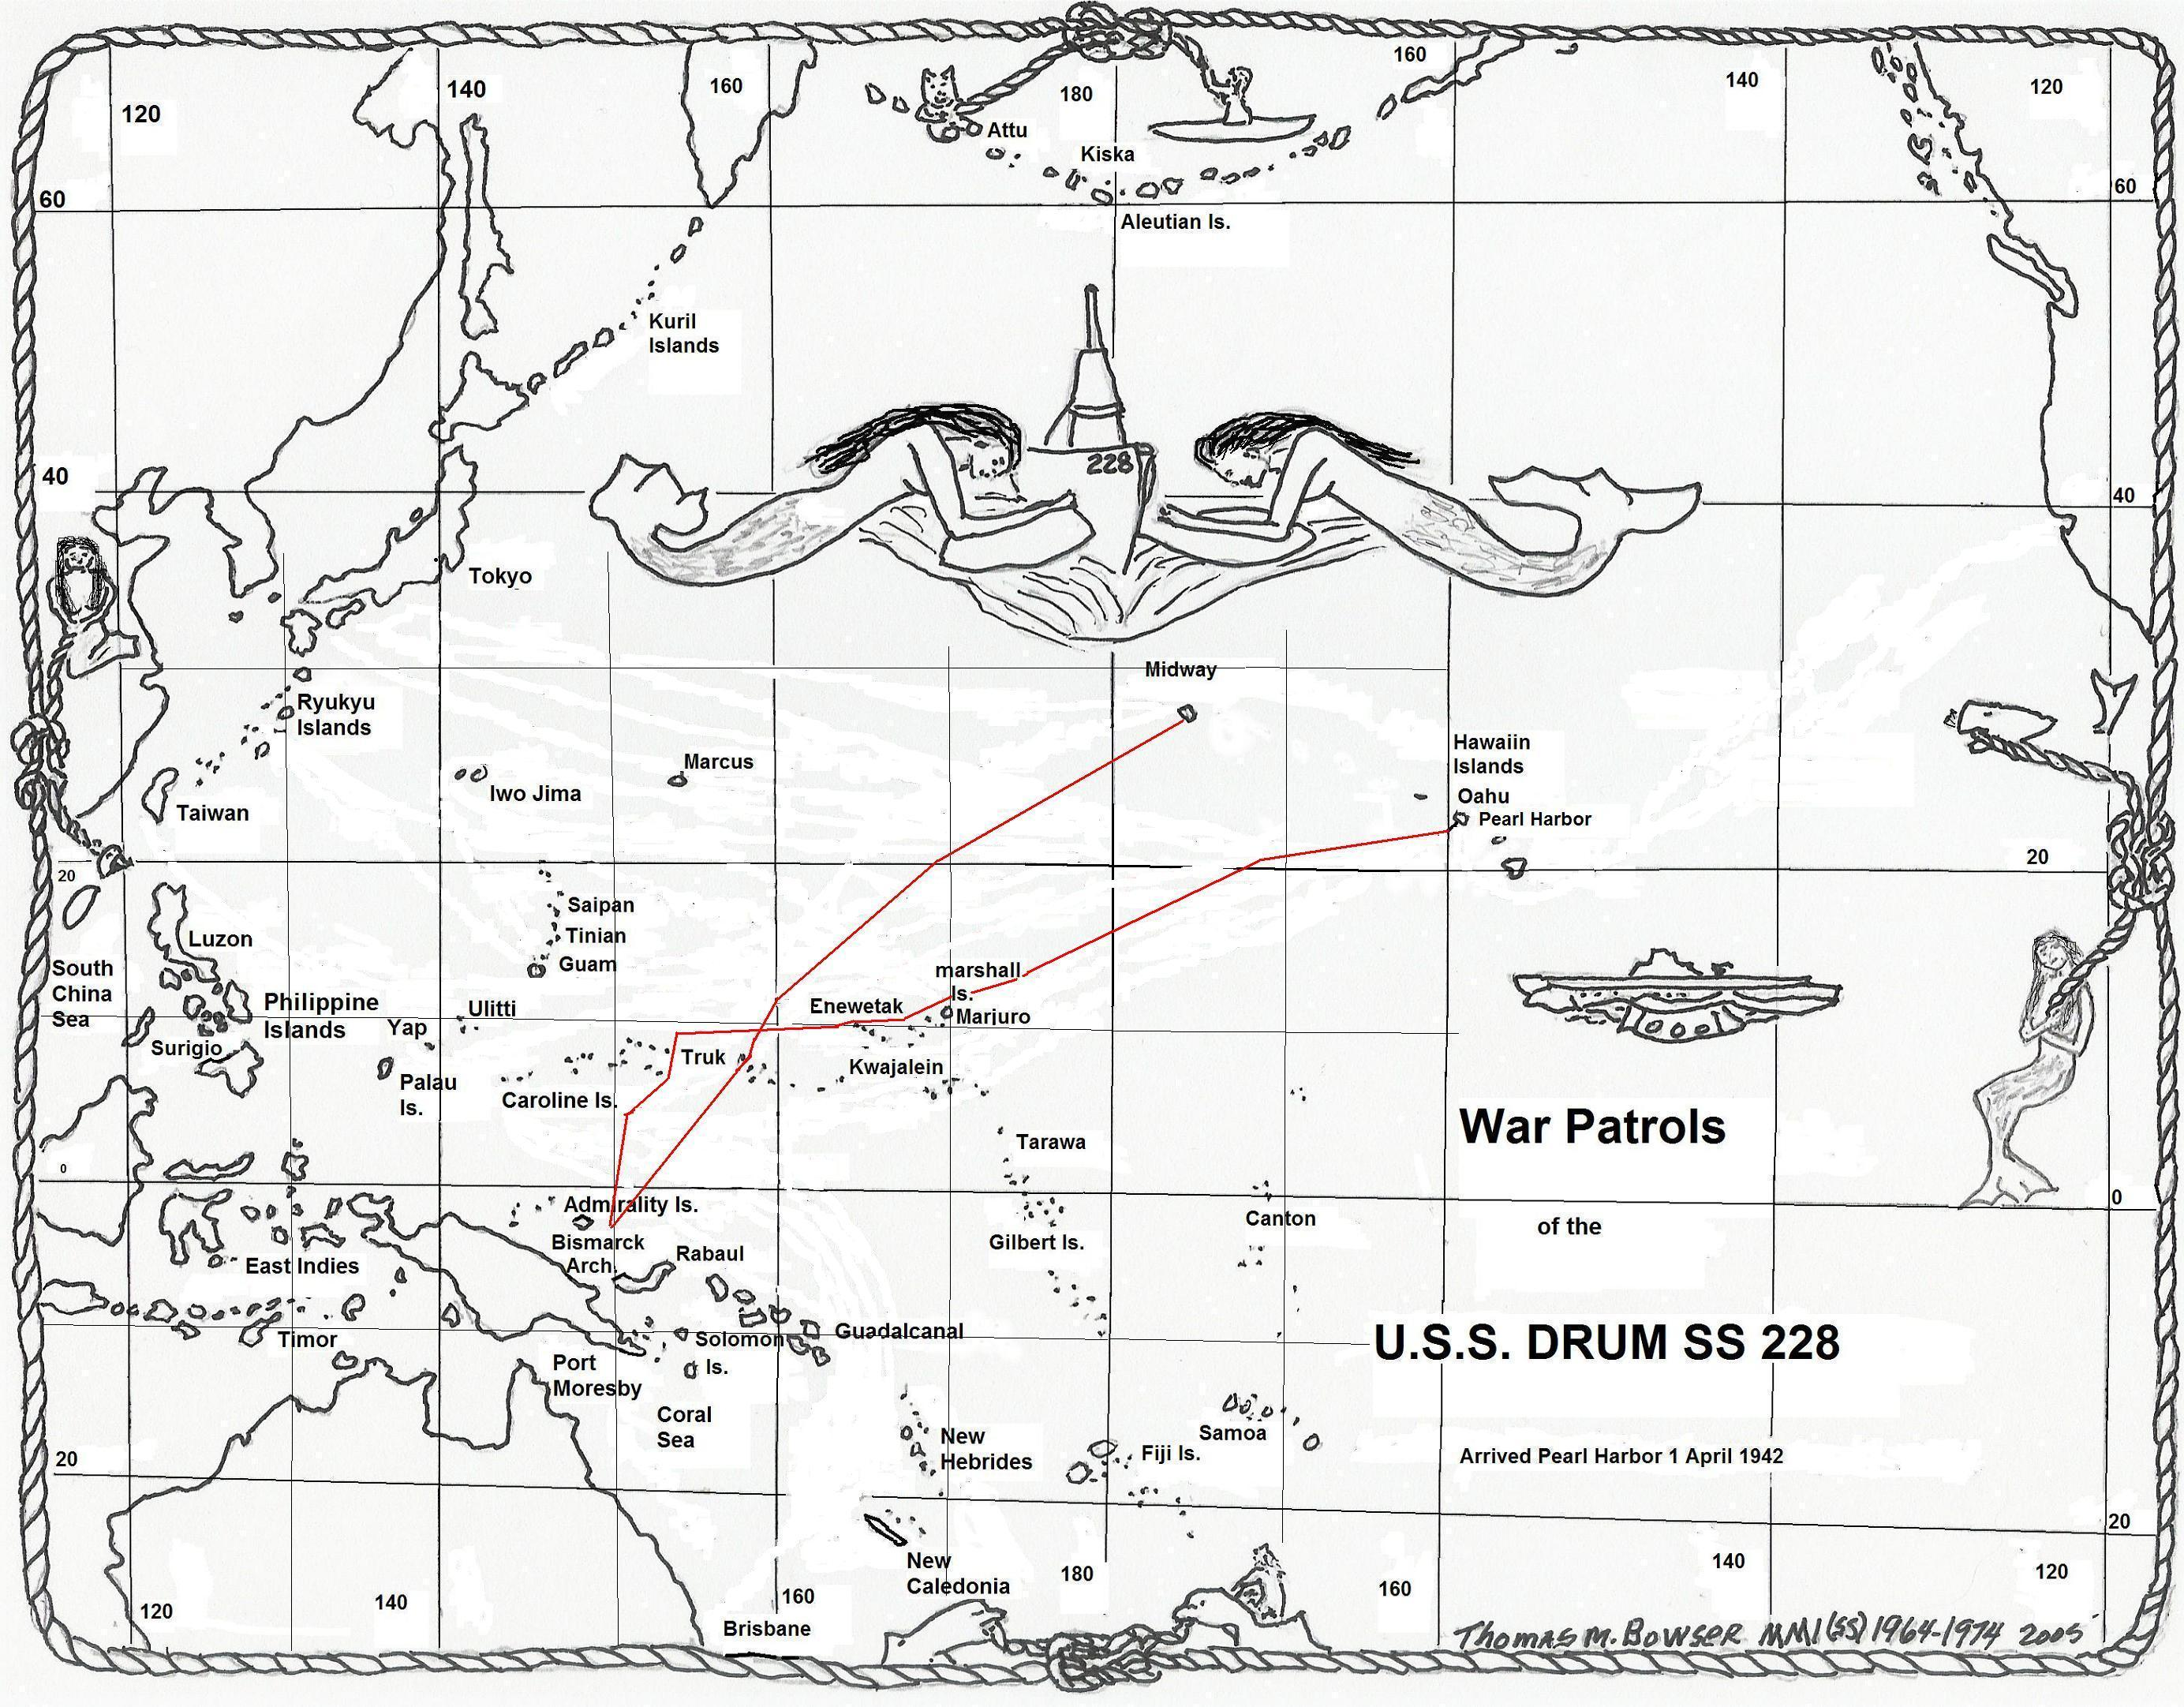 Uss Drum Ss 228 Second War Patrol